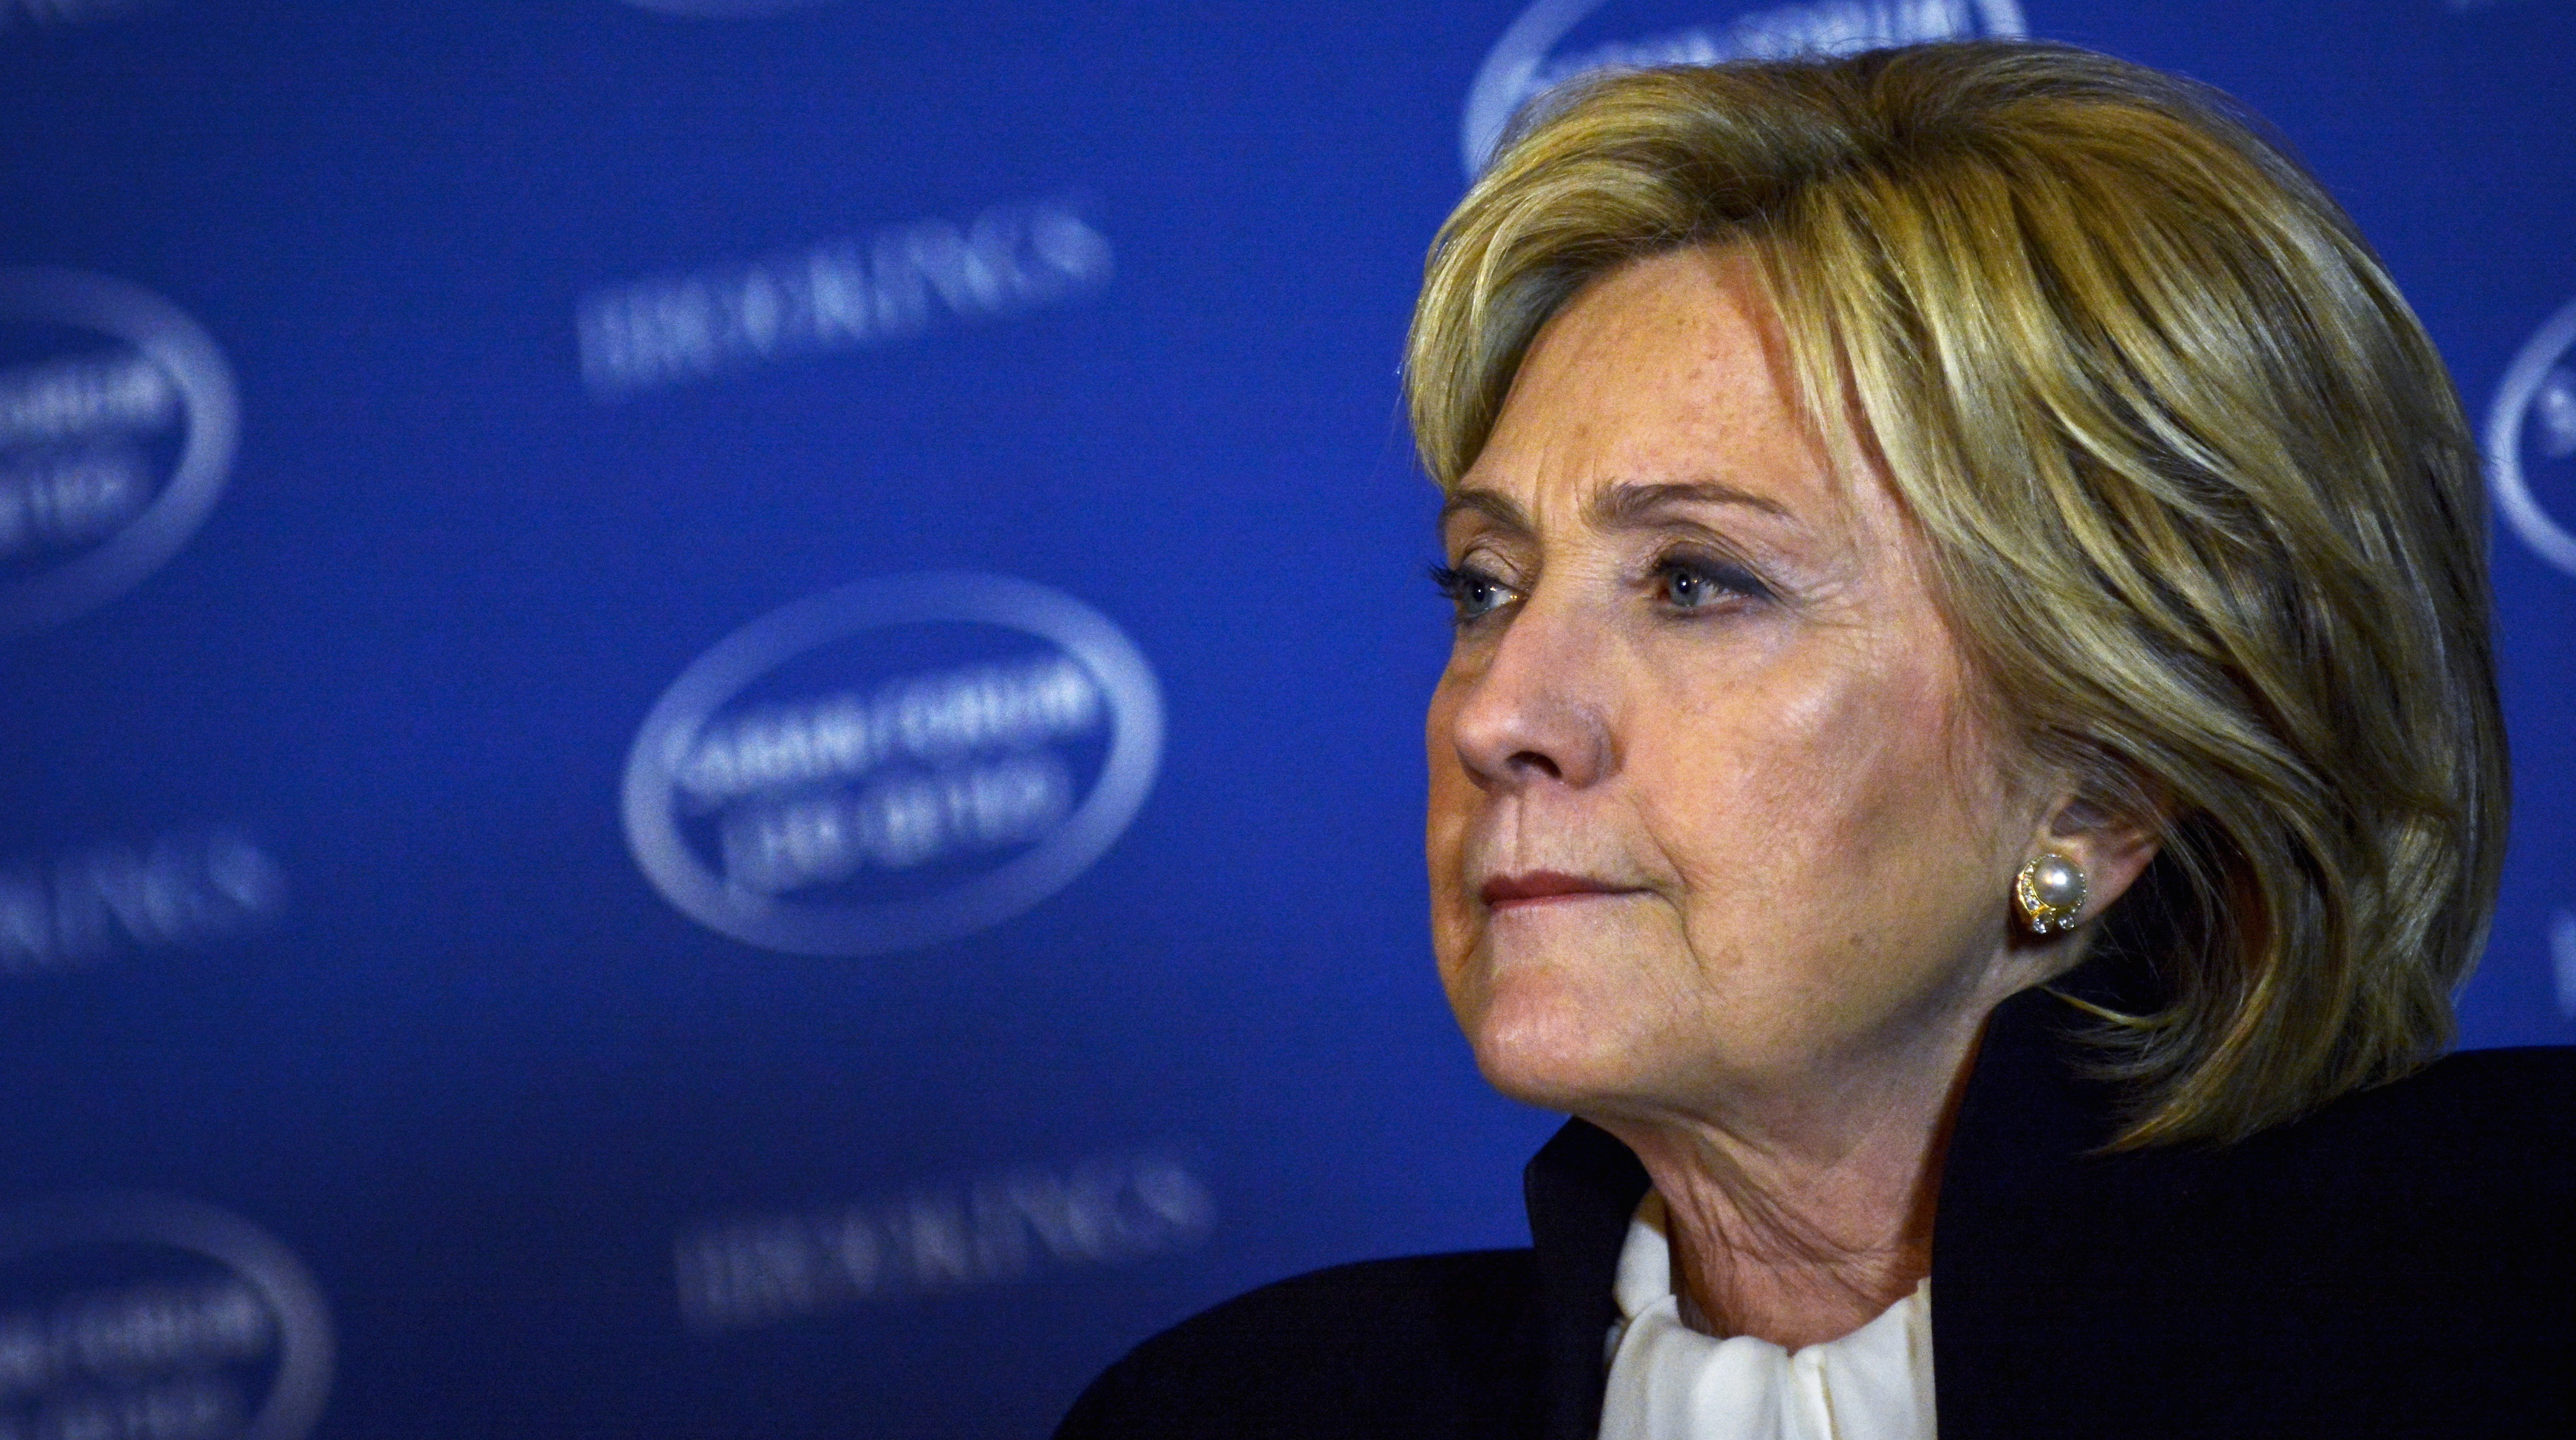 U.S. Democratic presidential candidate and former Secretary of State Hillary Clinton takes questions from the audience after delivering the keynote address at the Brookings Institution Saban Forum at the Willard Hotel in Washington